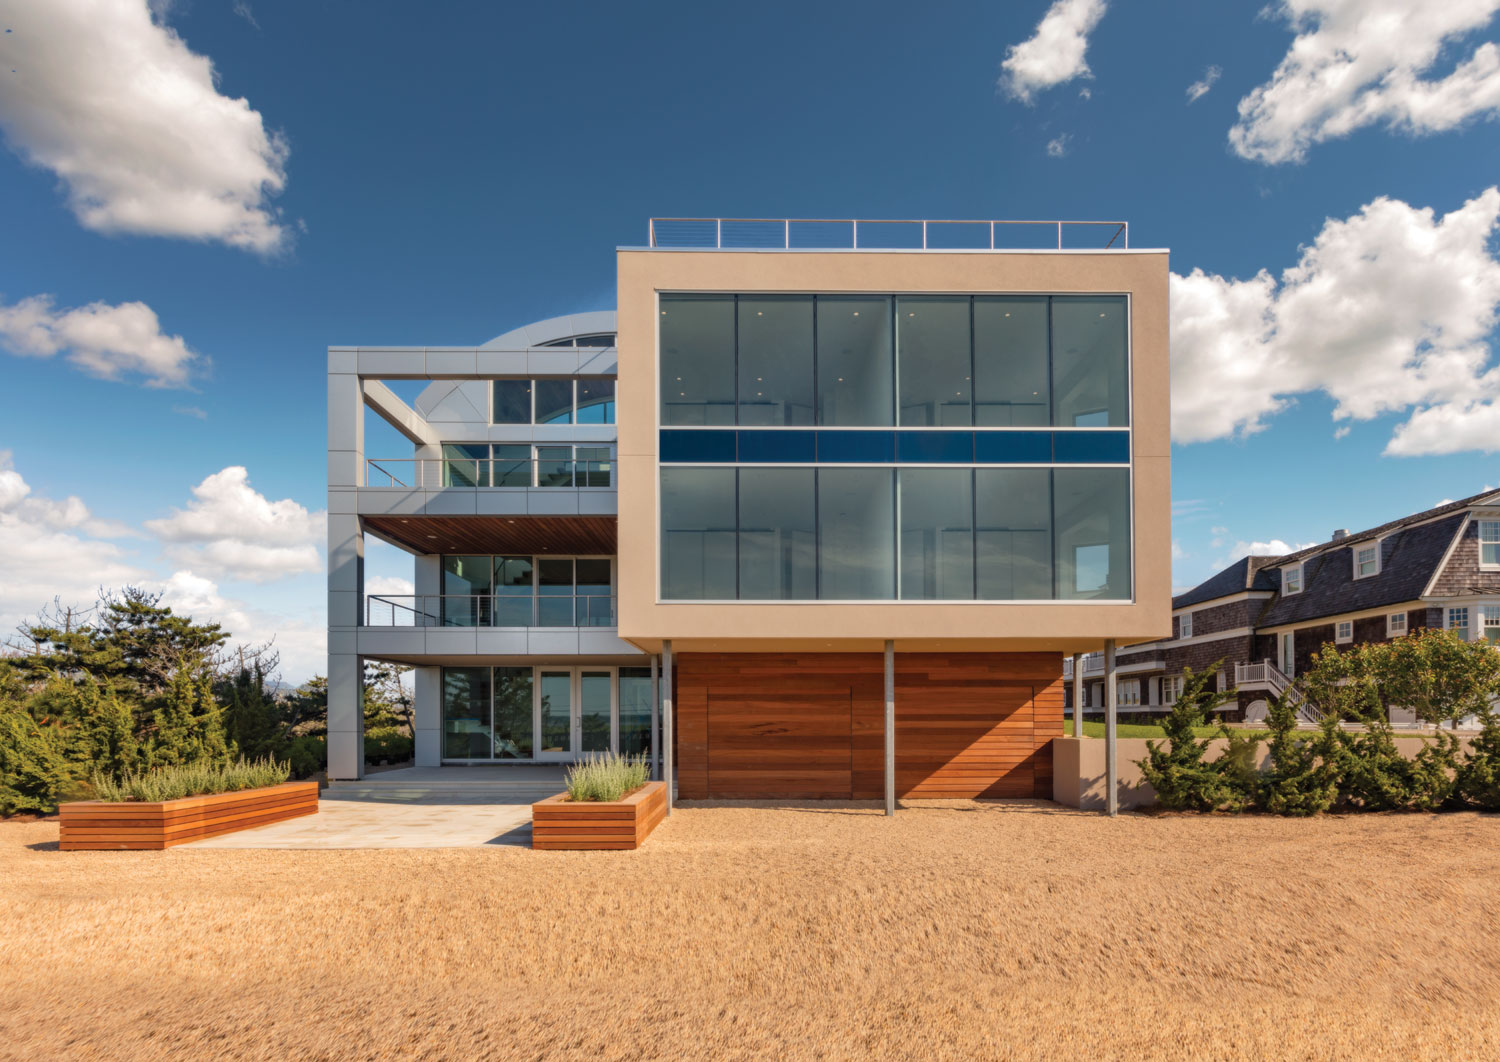 A contemporary marvel in glass and steel, with unrivaled views of the Atlantic Ocean and Shinnecock Bay, provides Hamptons living at its finest.